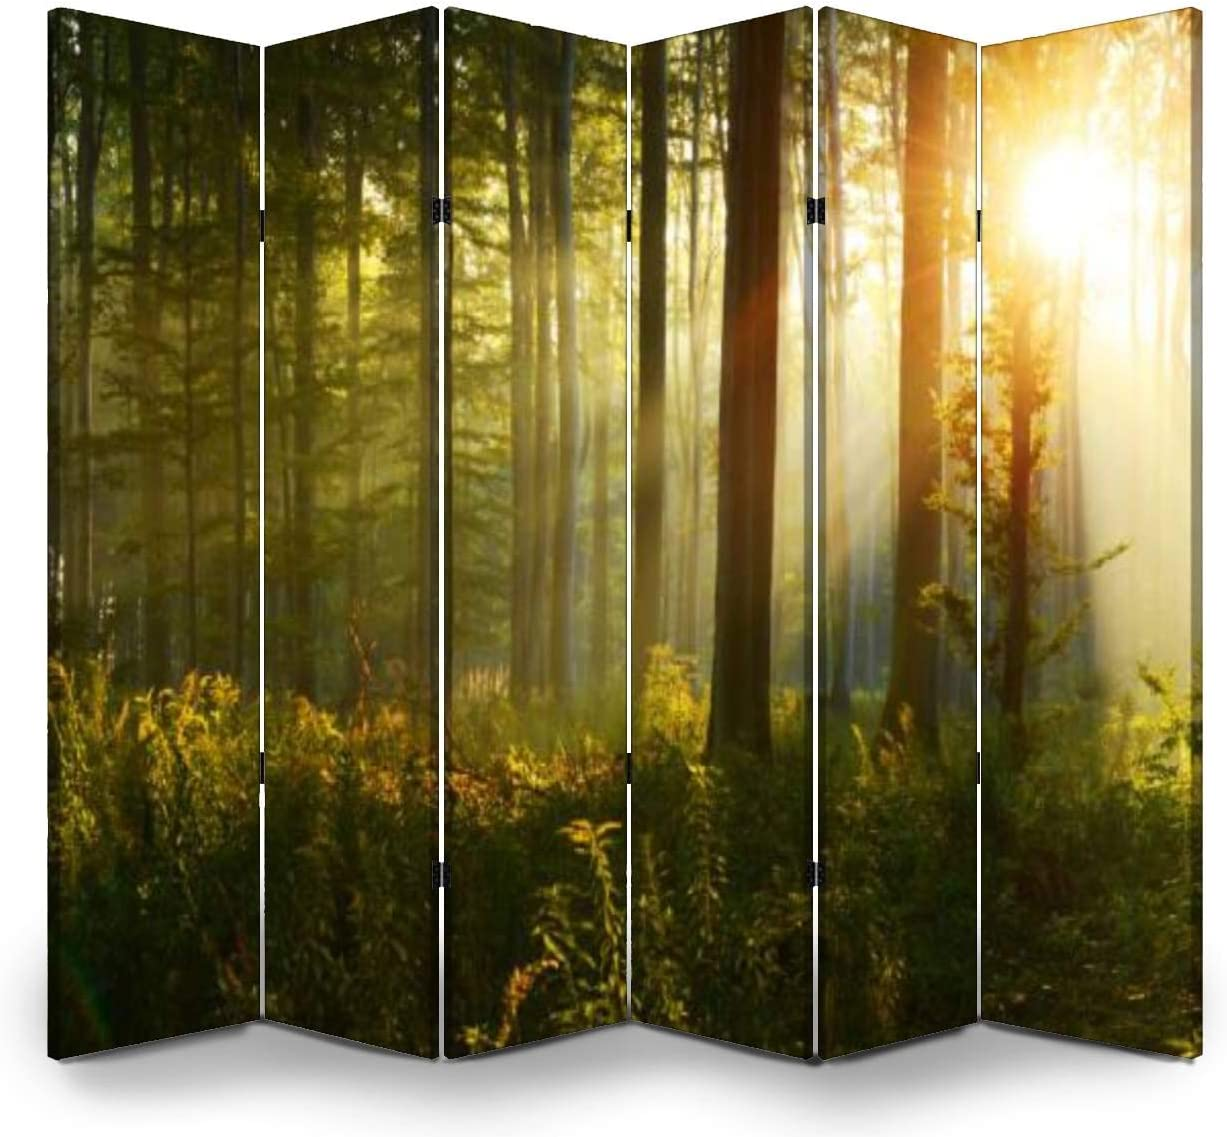 6 Panels Online limited product Room Divider Screen Year-end annual account Partition Fol Forest Morning The in